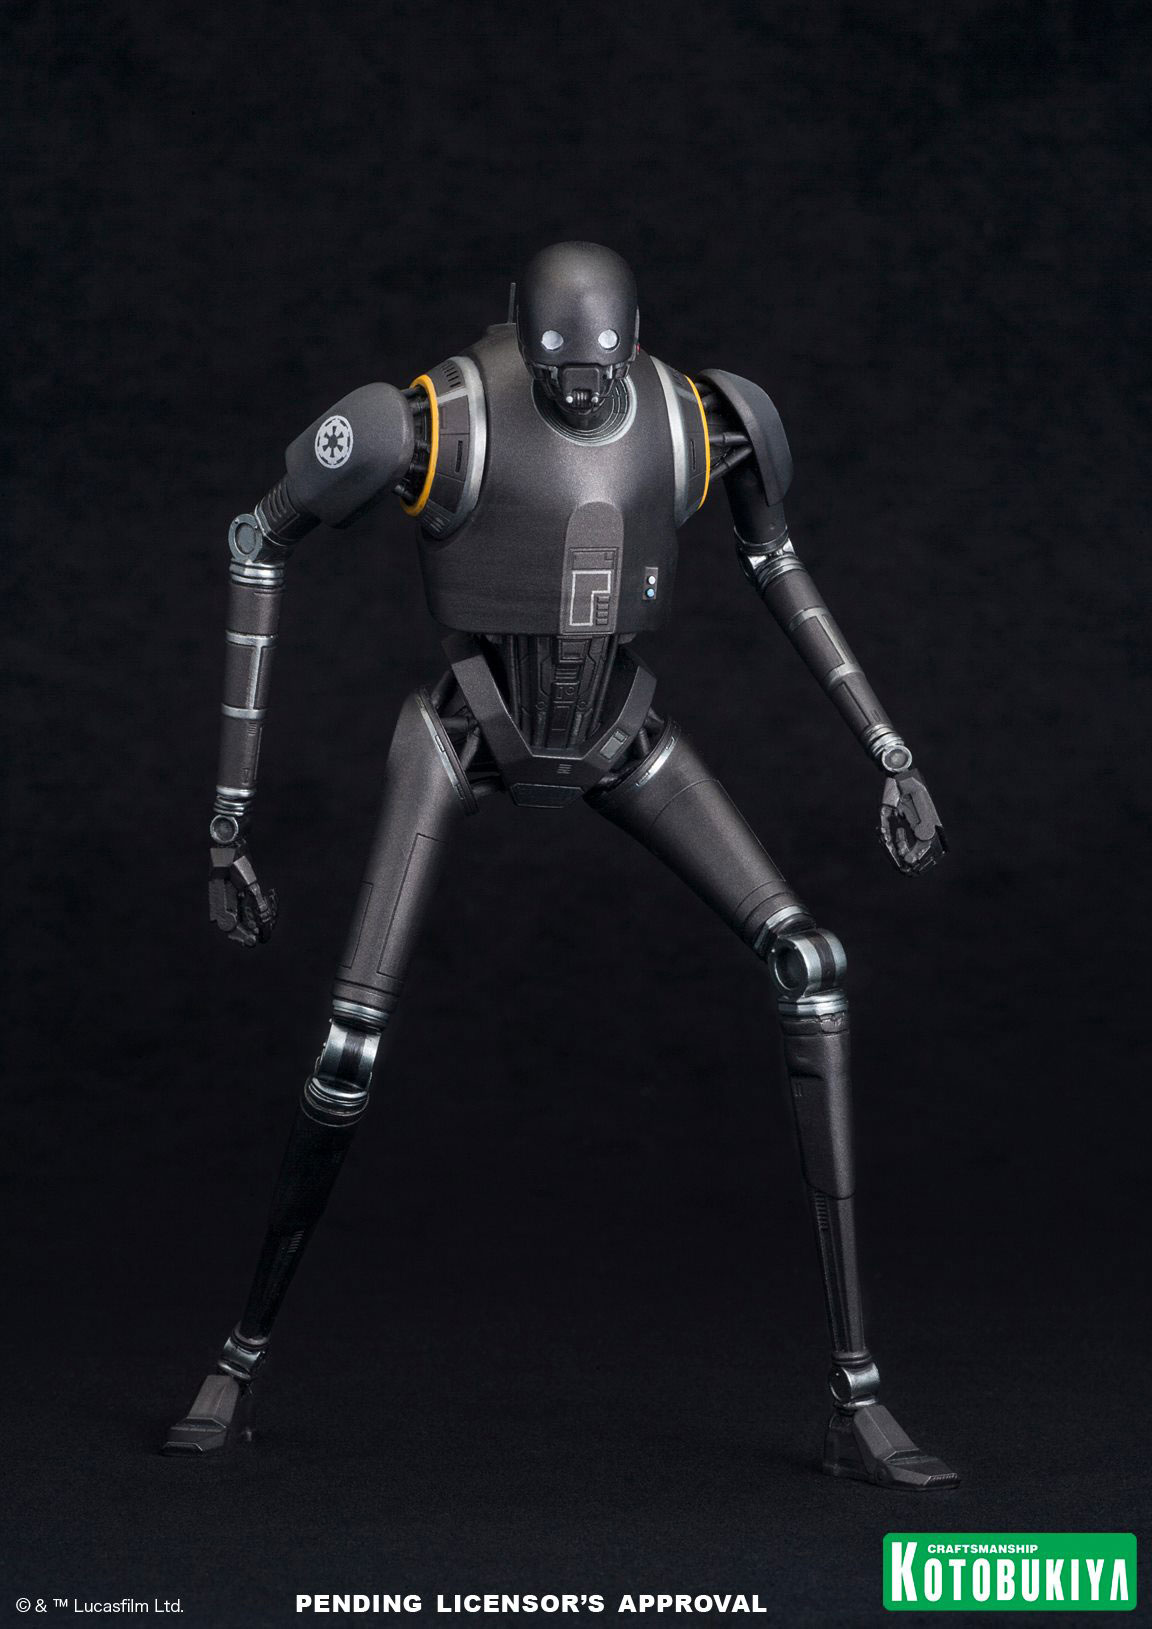 kotobukiya-star-wars-rogue-one-k-2so-artfx-statue-1